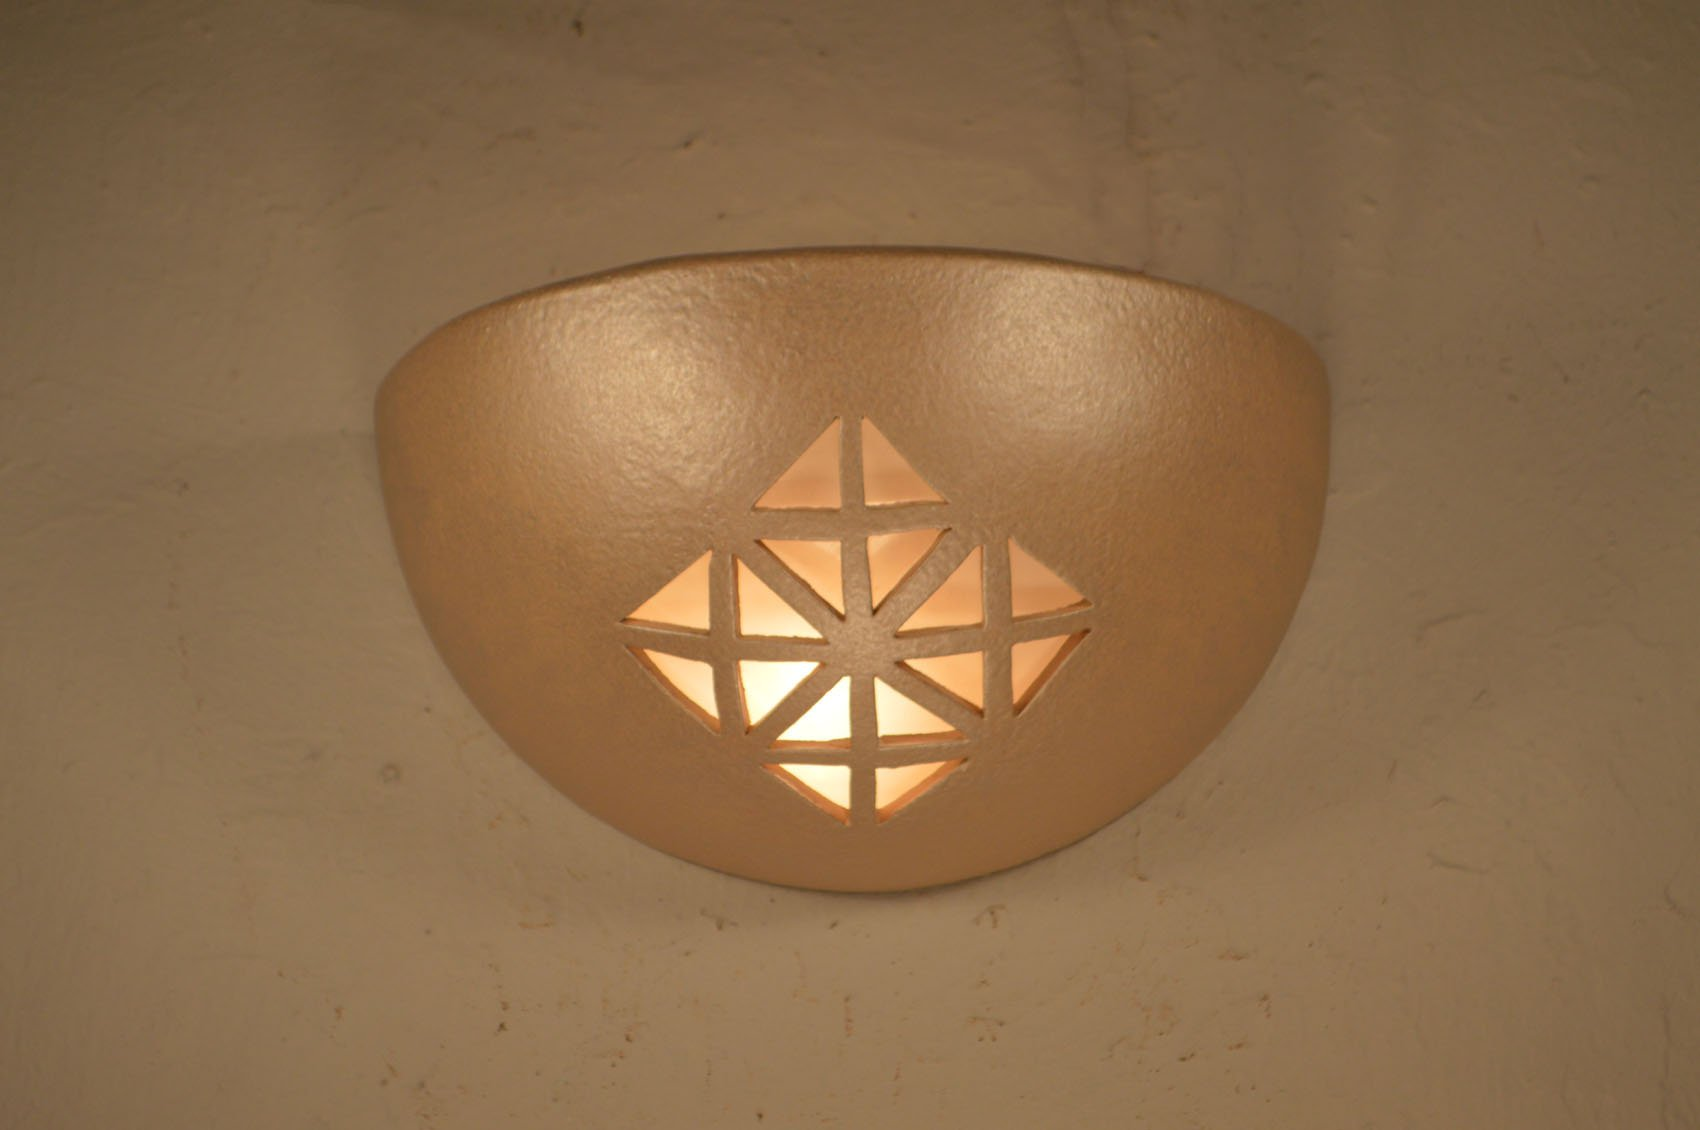 Quadra Design Small Bowl Up Light Wall Sconce in Tan Pearl Color for the Modern or Contemporary Indoor